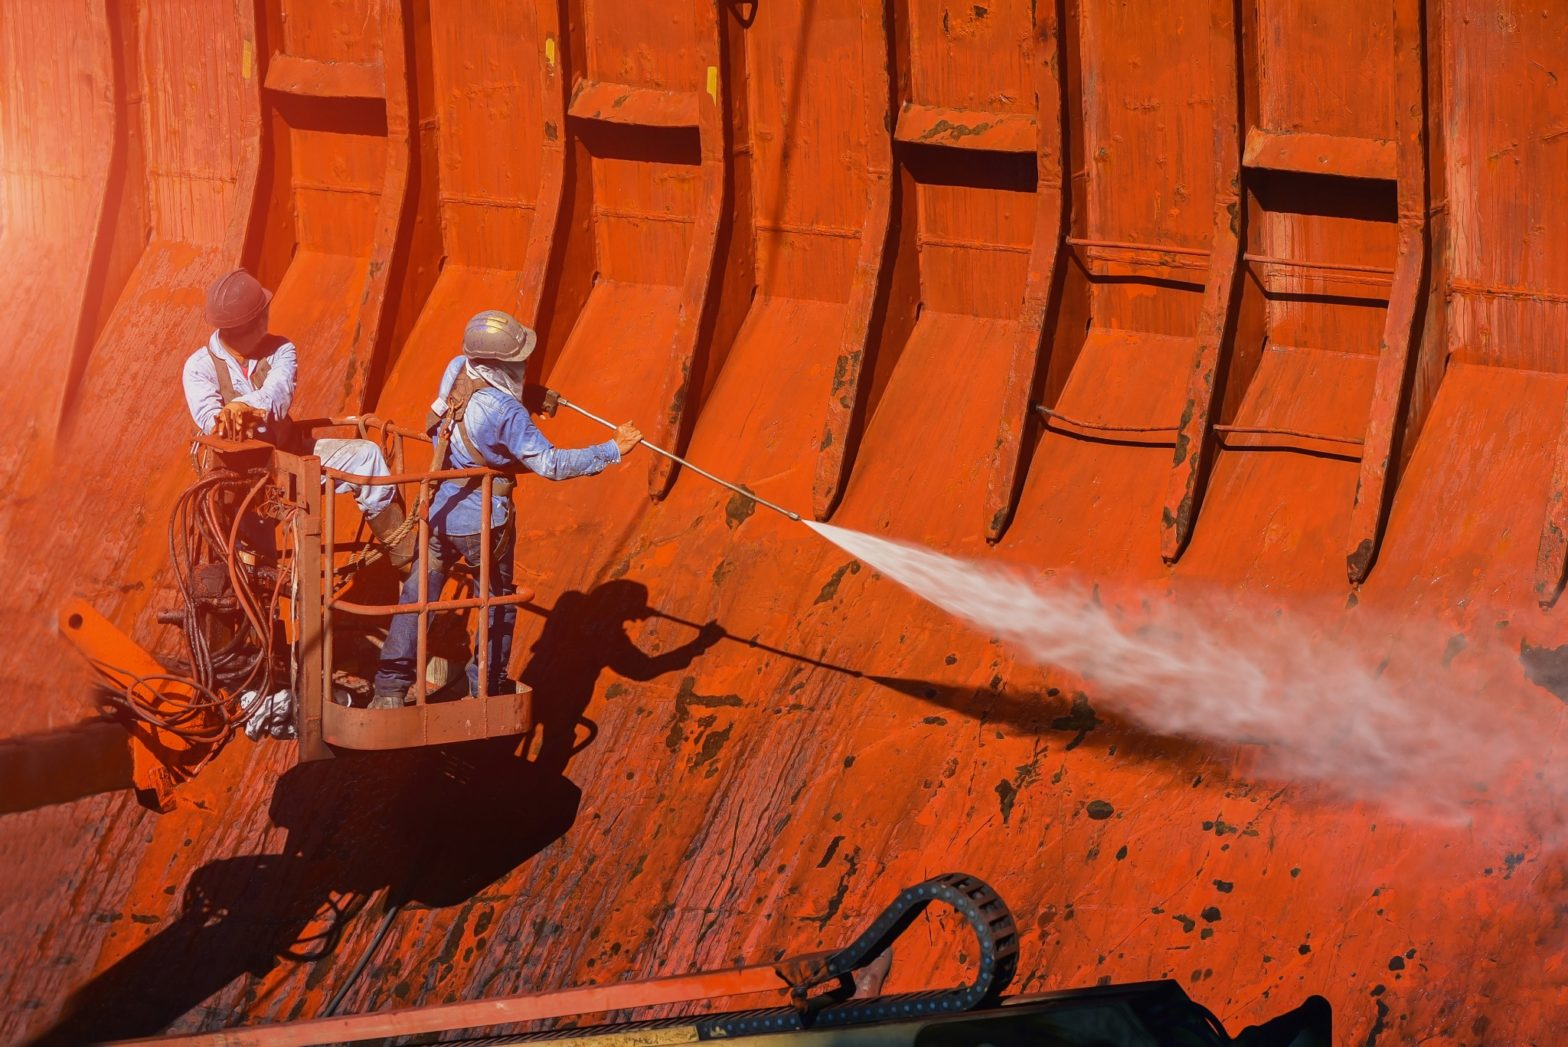 Washing and cleaning, worker High pressure water jet to cleaning with Old ship washing on Trucks have sherry piker wearing safety harness with ppe in side cargo hold under ship repair in floating dry dock in shipyard. Preparing surface for corrosion resistant coating application